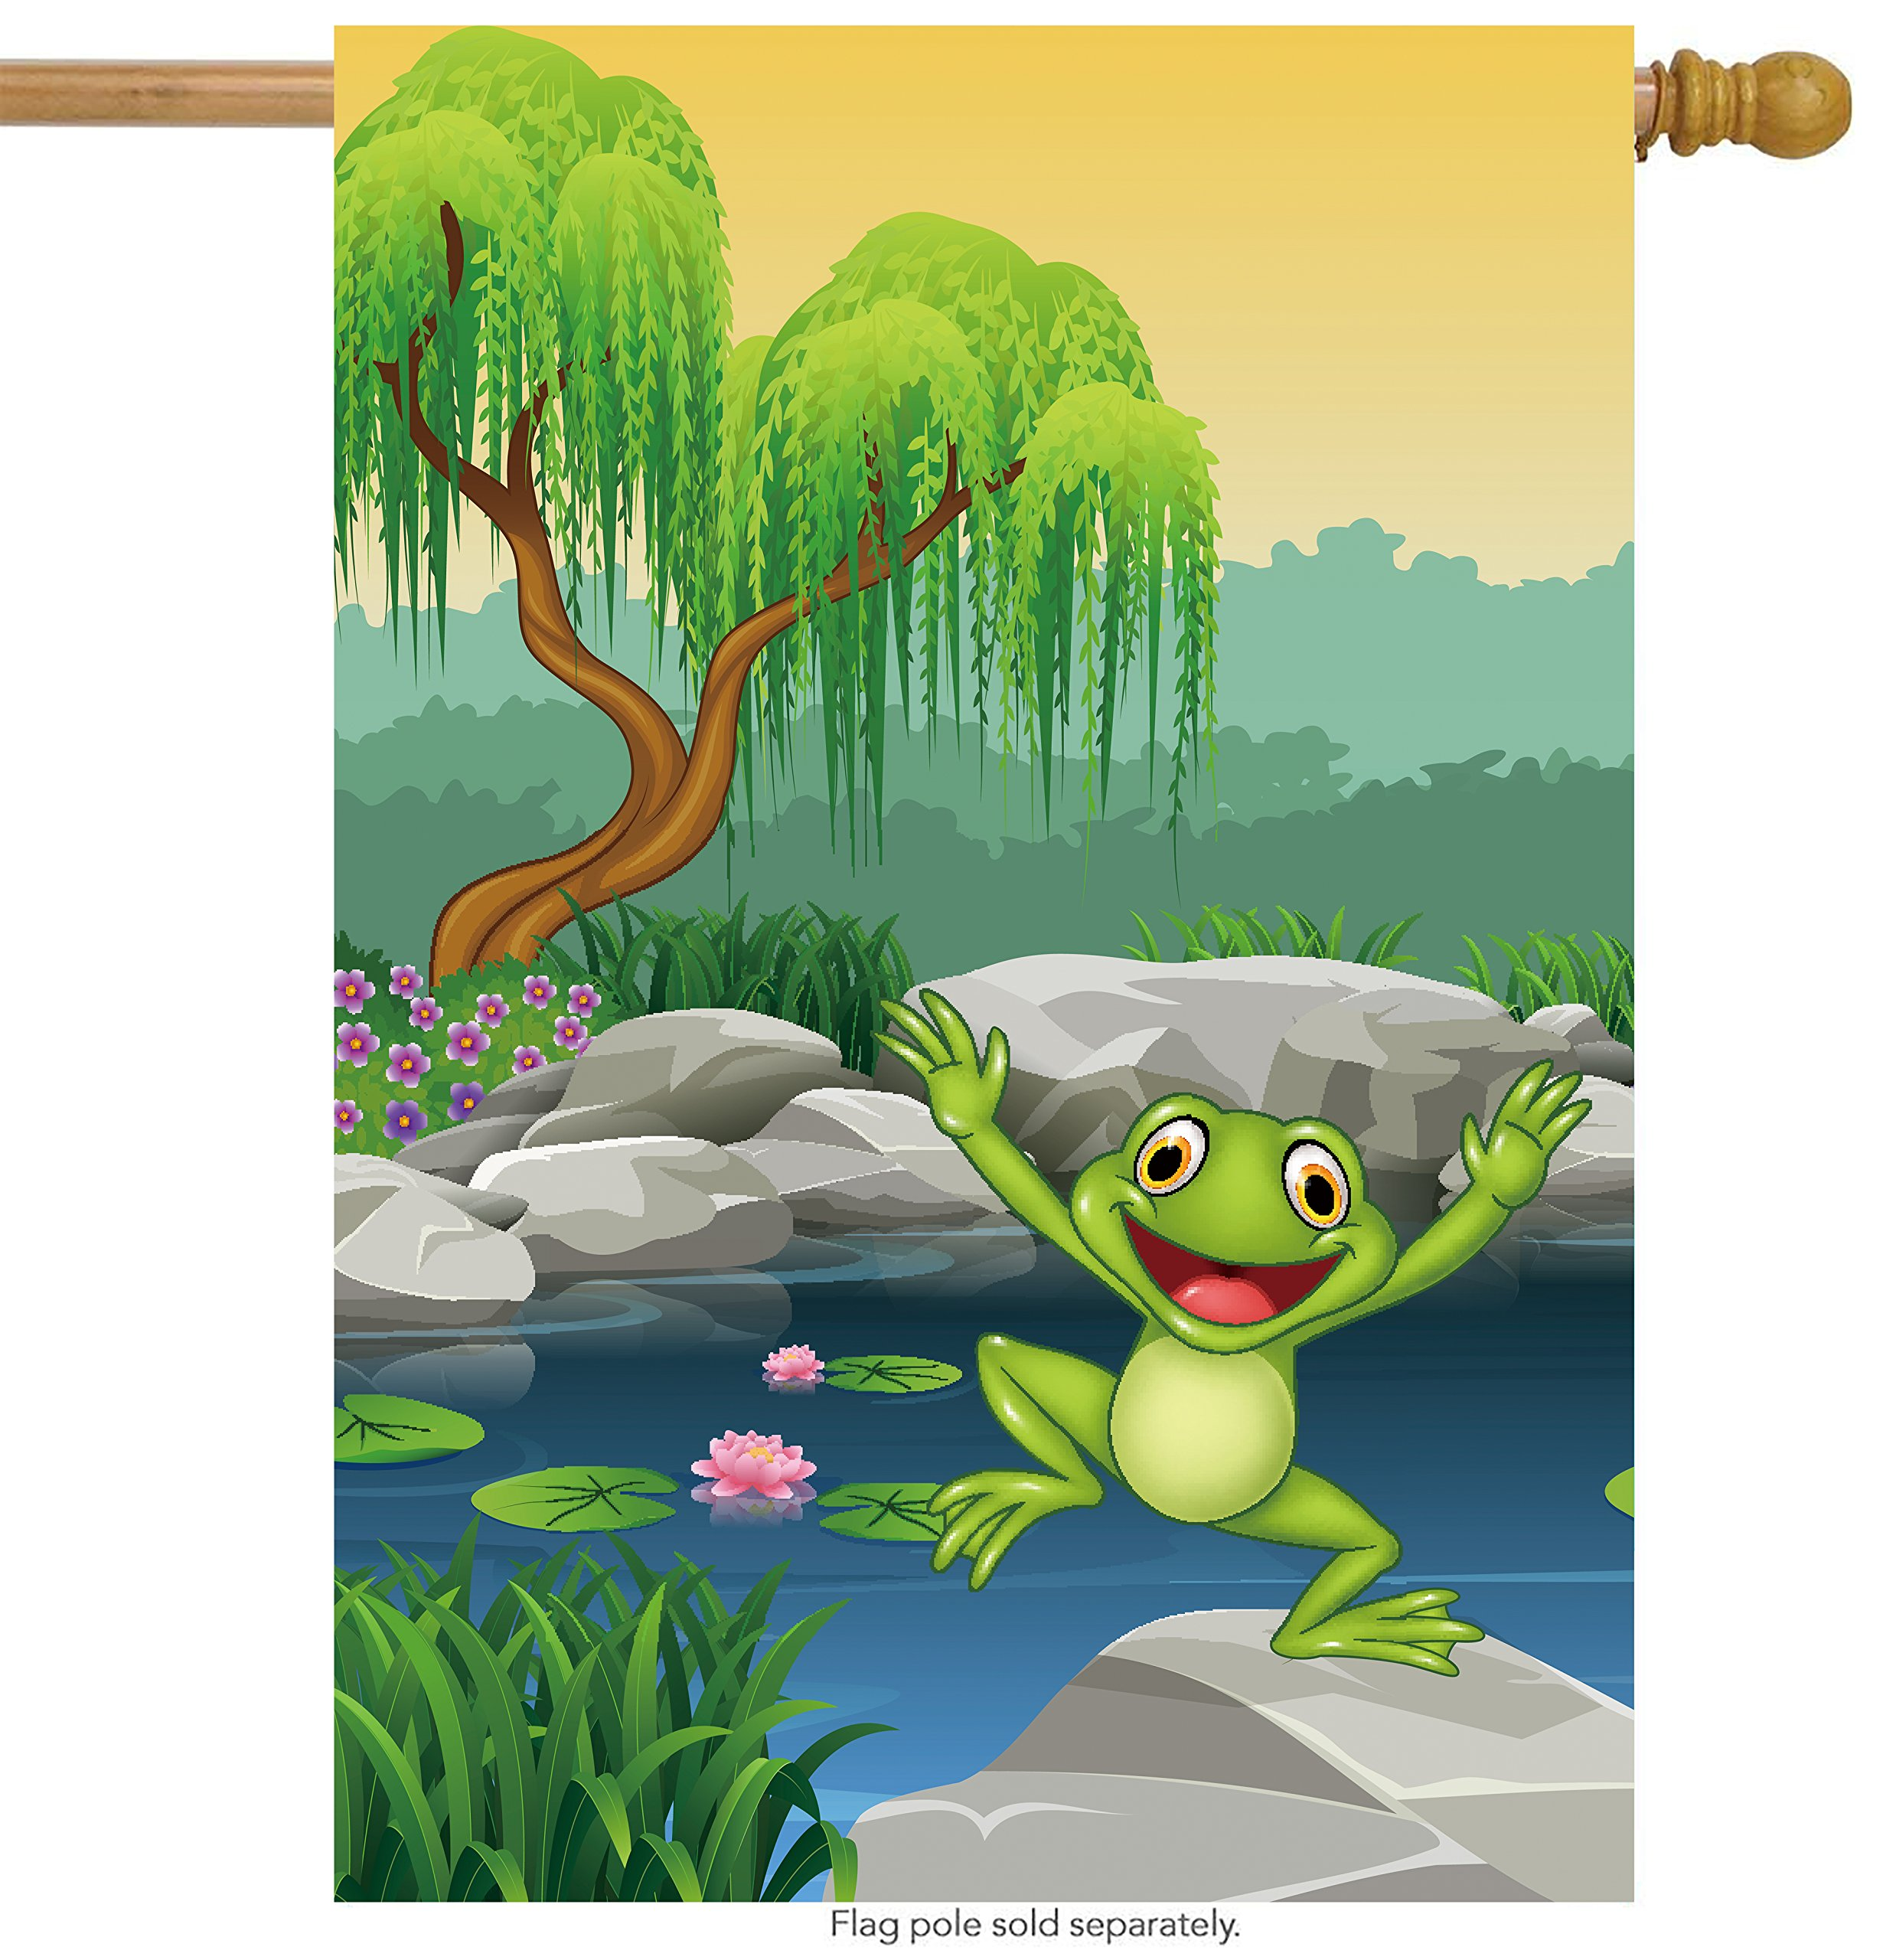 ShineSnow Animal Frog Lotus Flower Tree House Flag 28'' x 40'' Double Sided, Polyester Spring Cartoon River Lily Cute Funny Smile Welcome Yard Garden Flag Banners for Patio Lawn Outdoor Home Decor